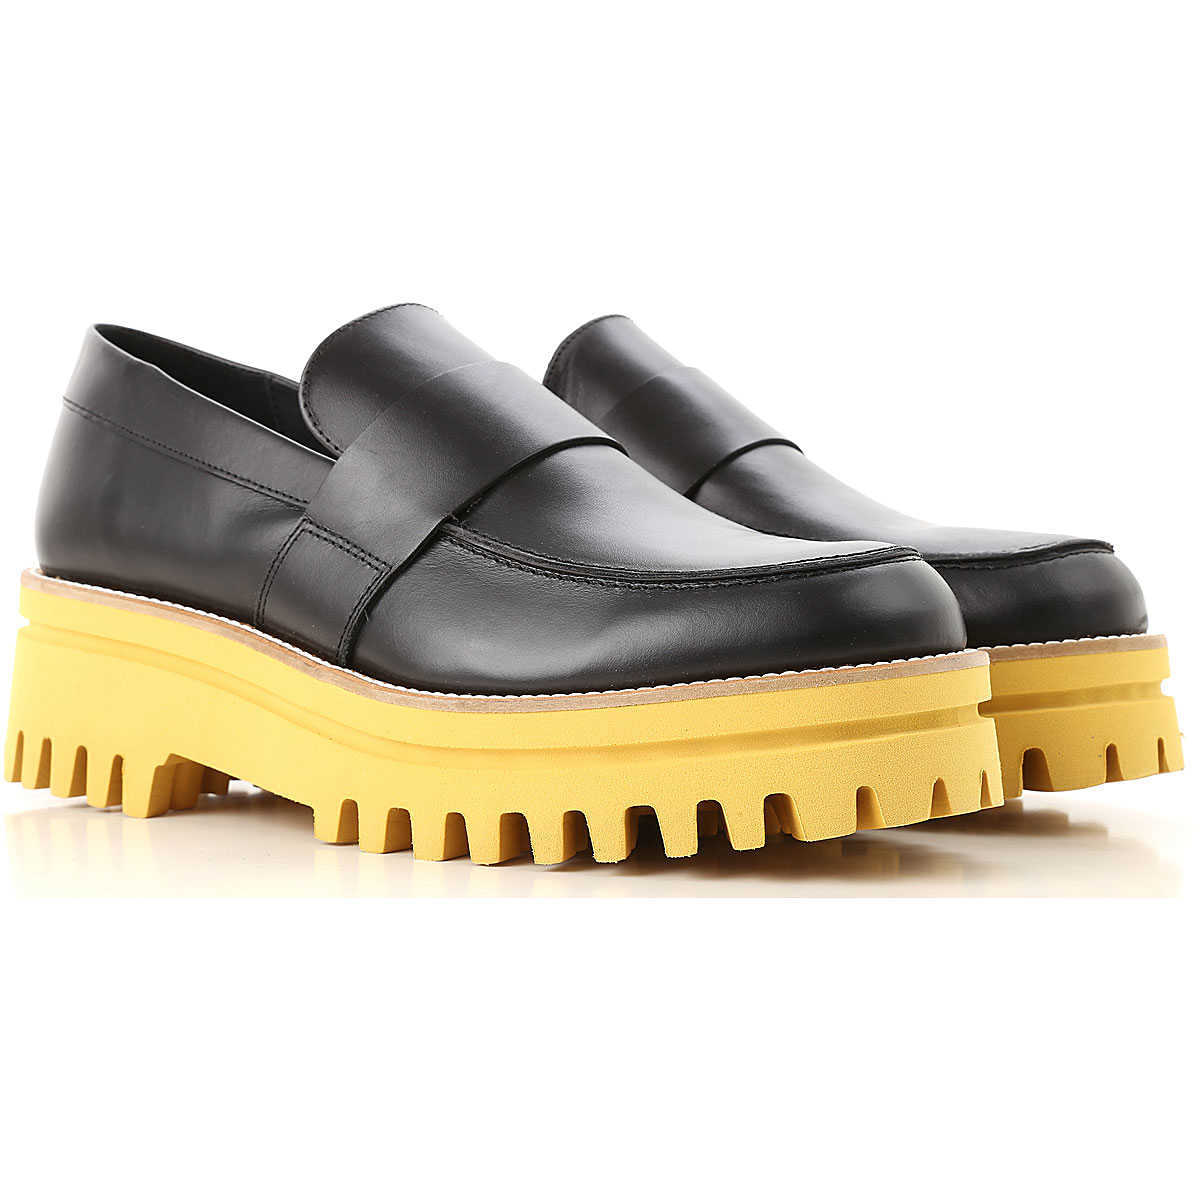 Paloma Barcelo Loafers for Women On Sale Black - GOOFASH